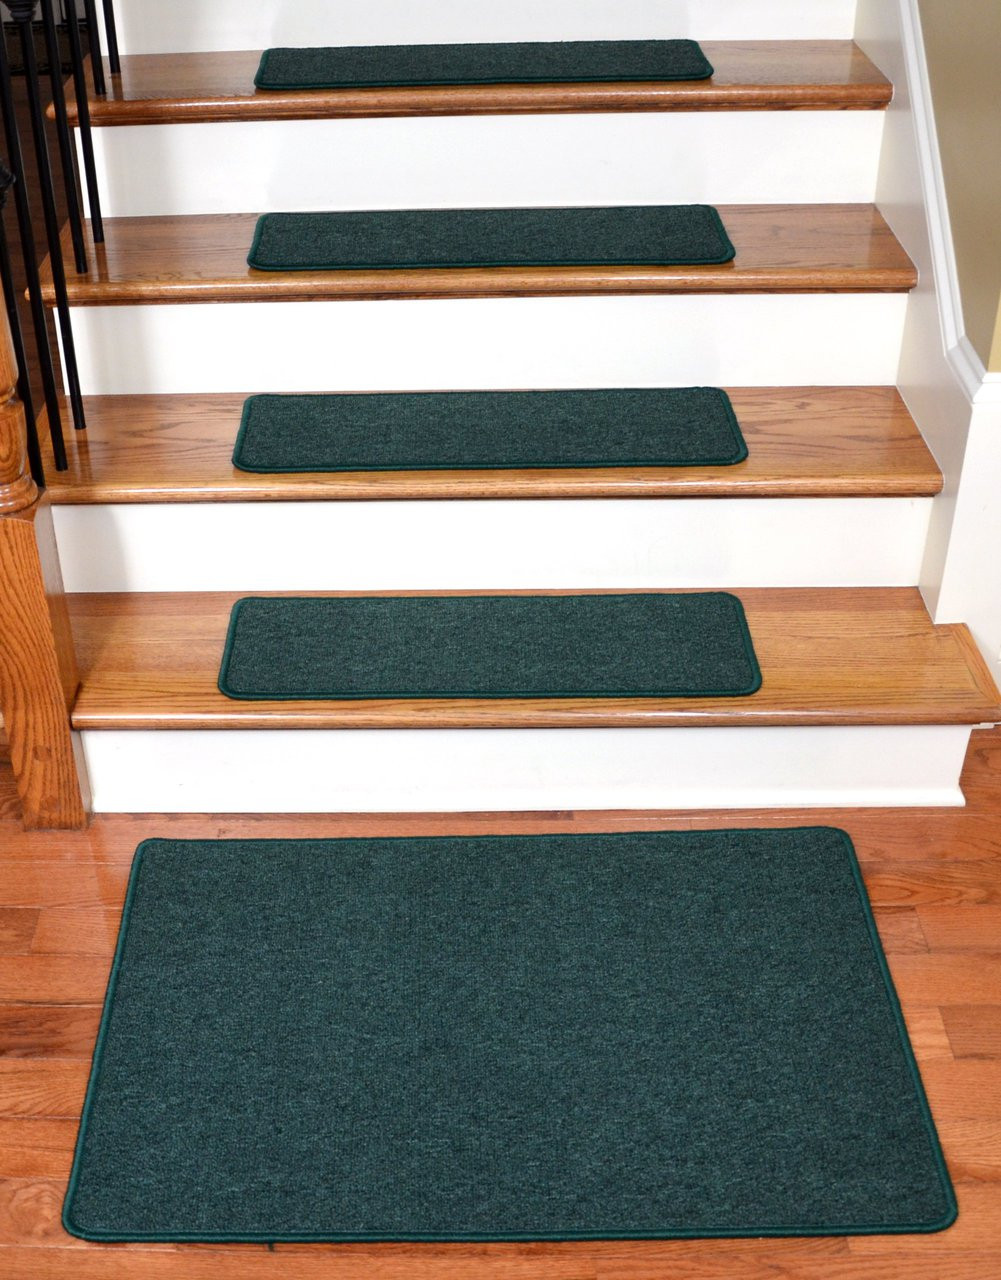 Dean Serged Diy Carpet Stair Treads 27 Quot X 9 Quot Emerald